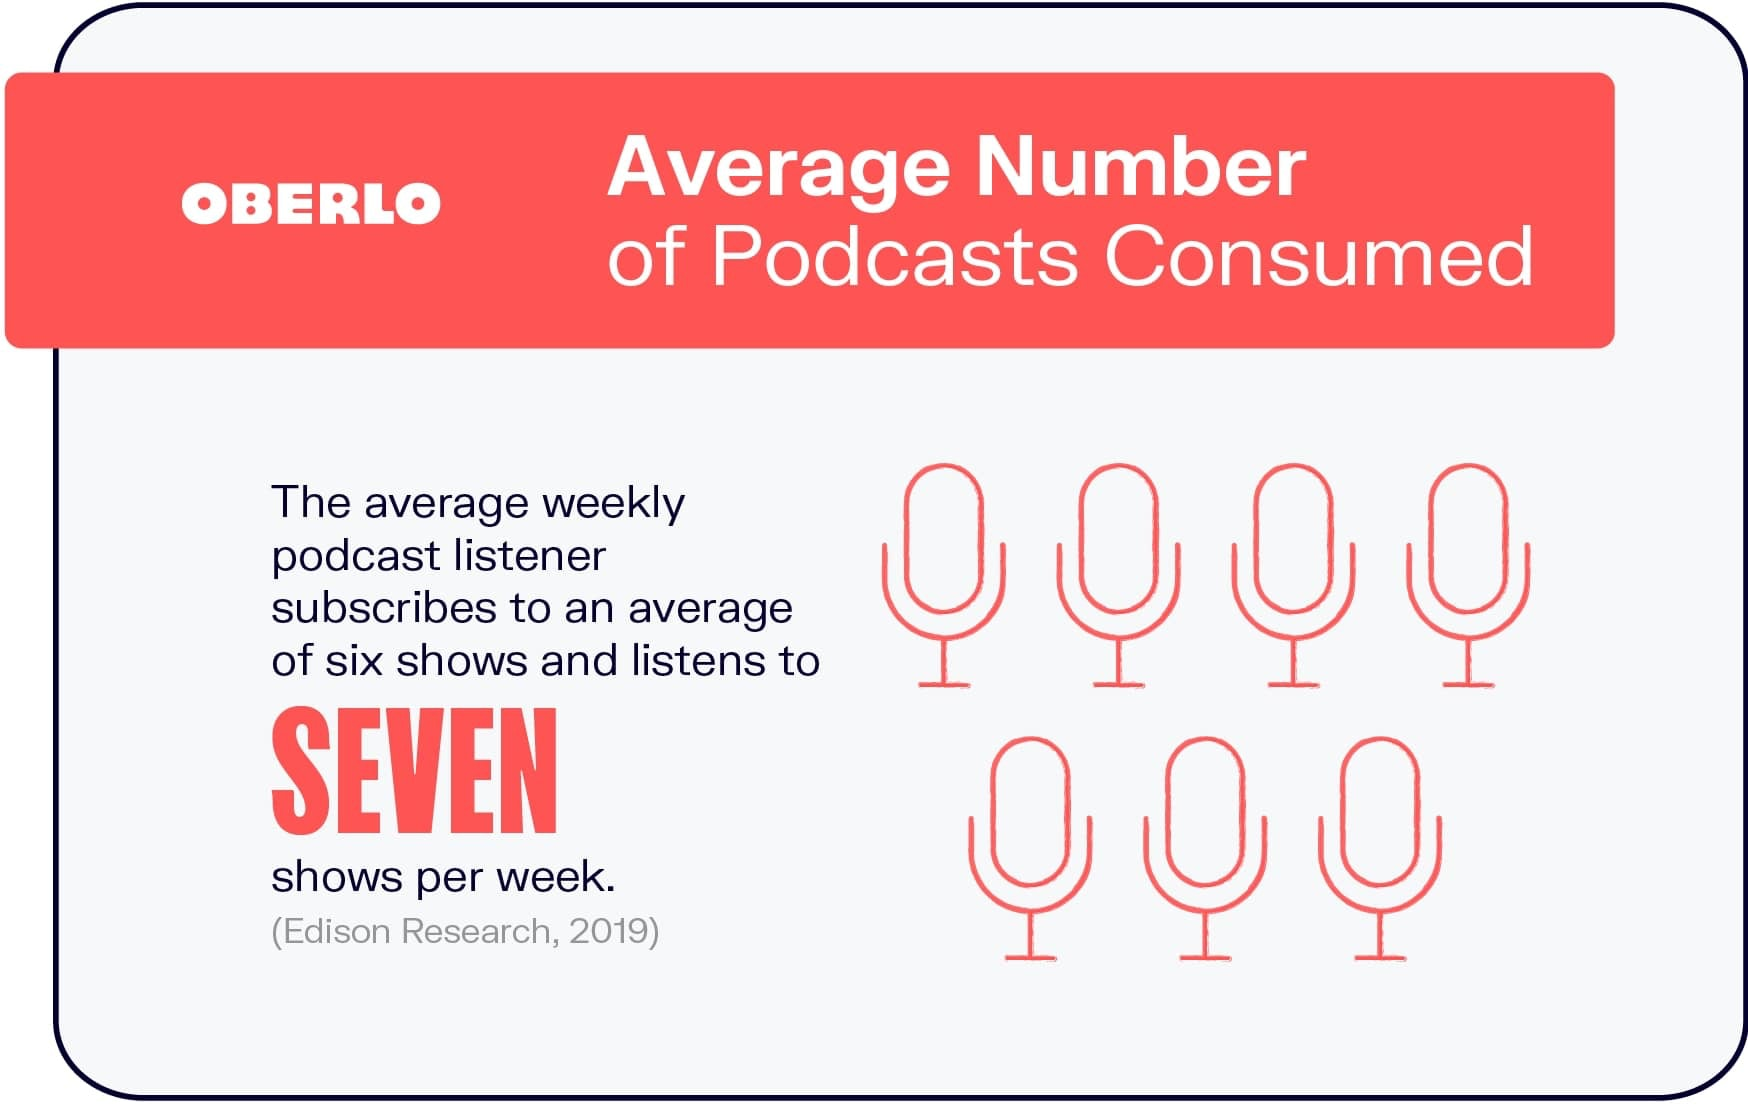 Average Number of Podcasts Consumed